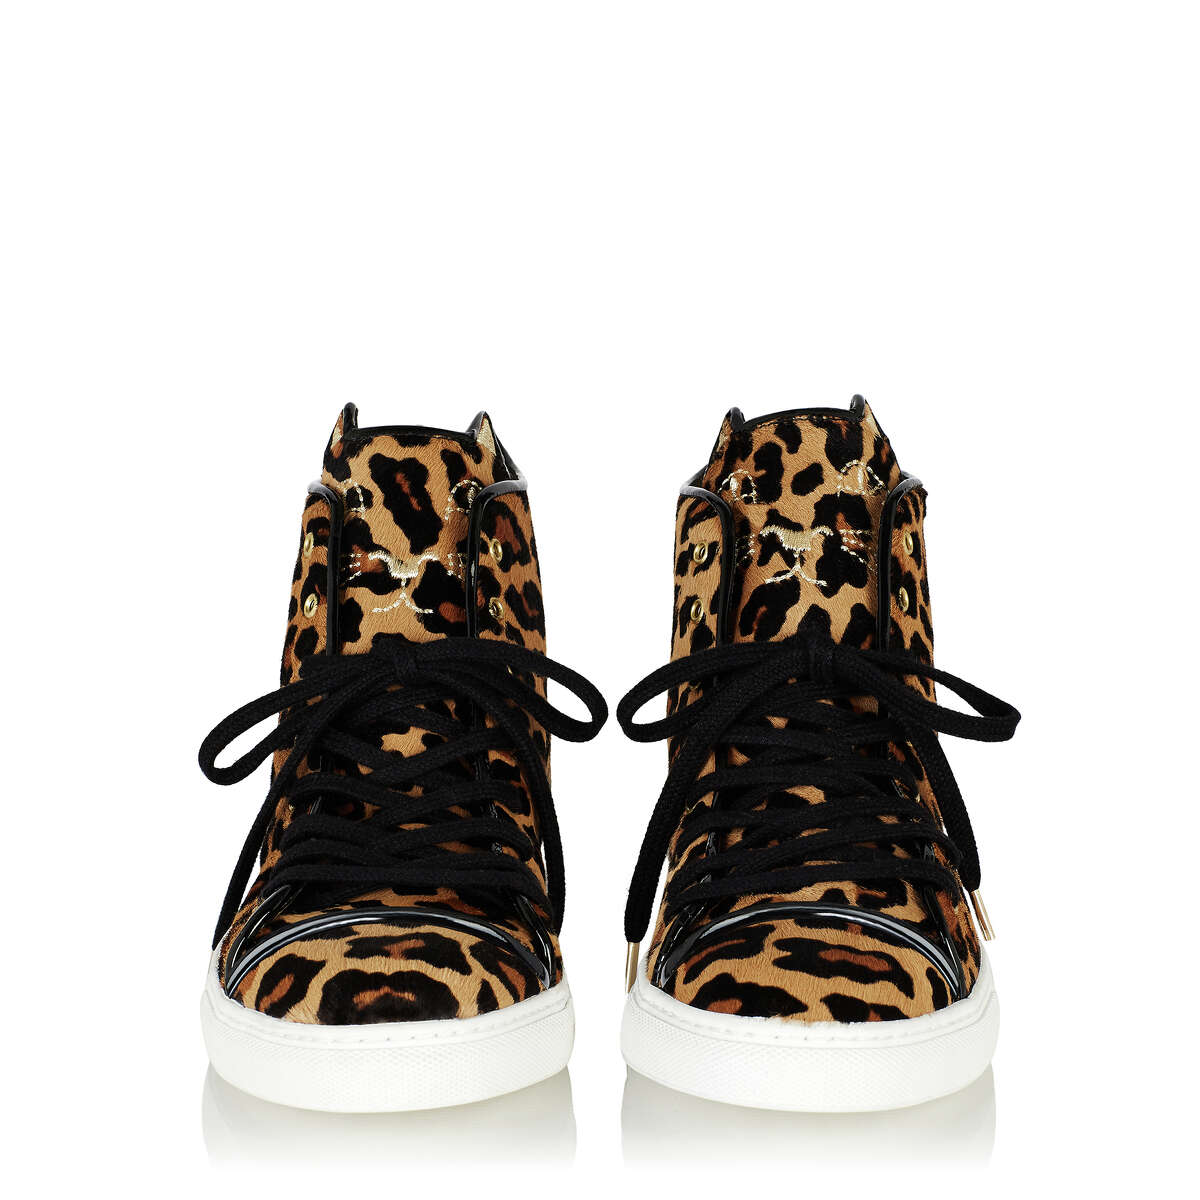 Charlotte Olympia's new sneaker collection includes the Purrrfect High-Tops.